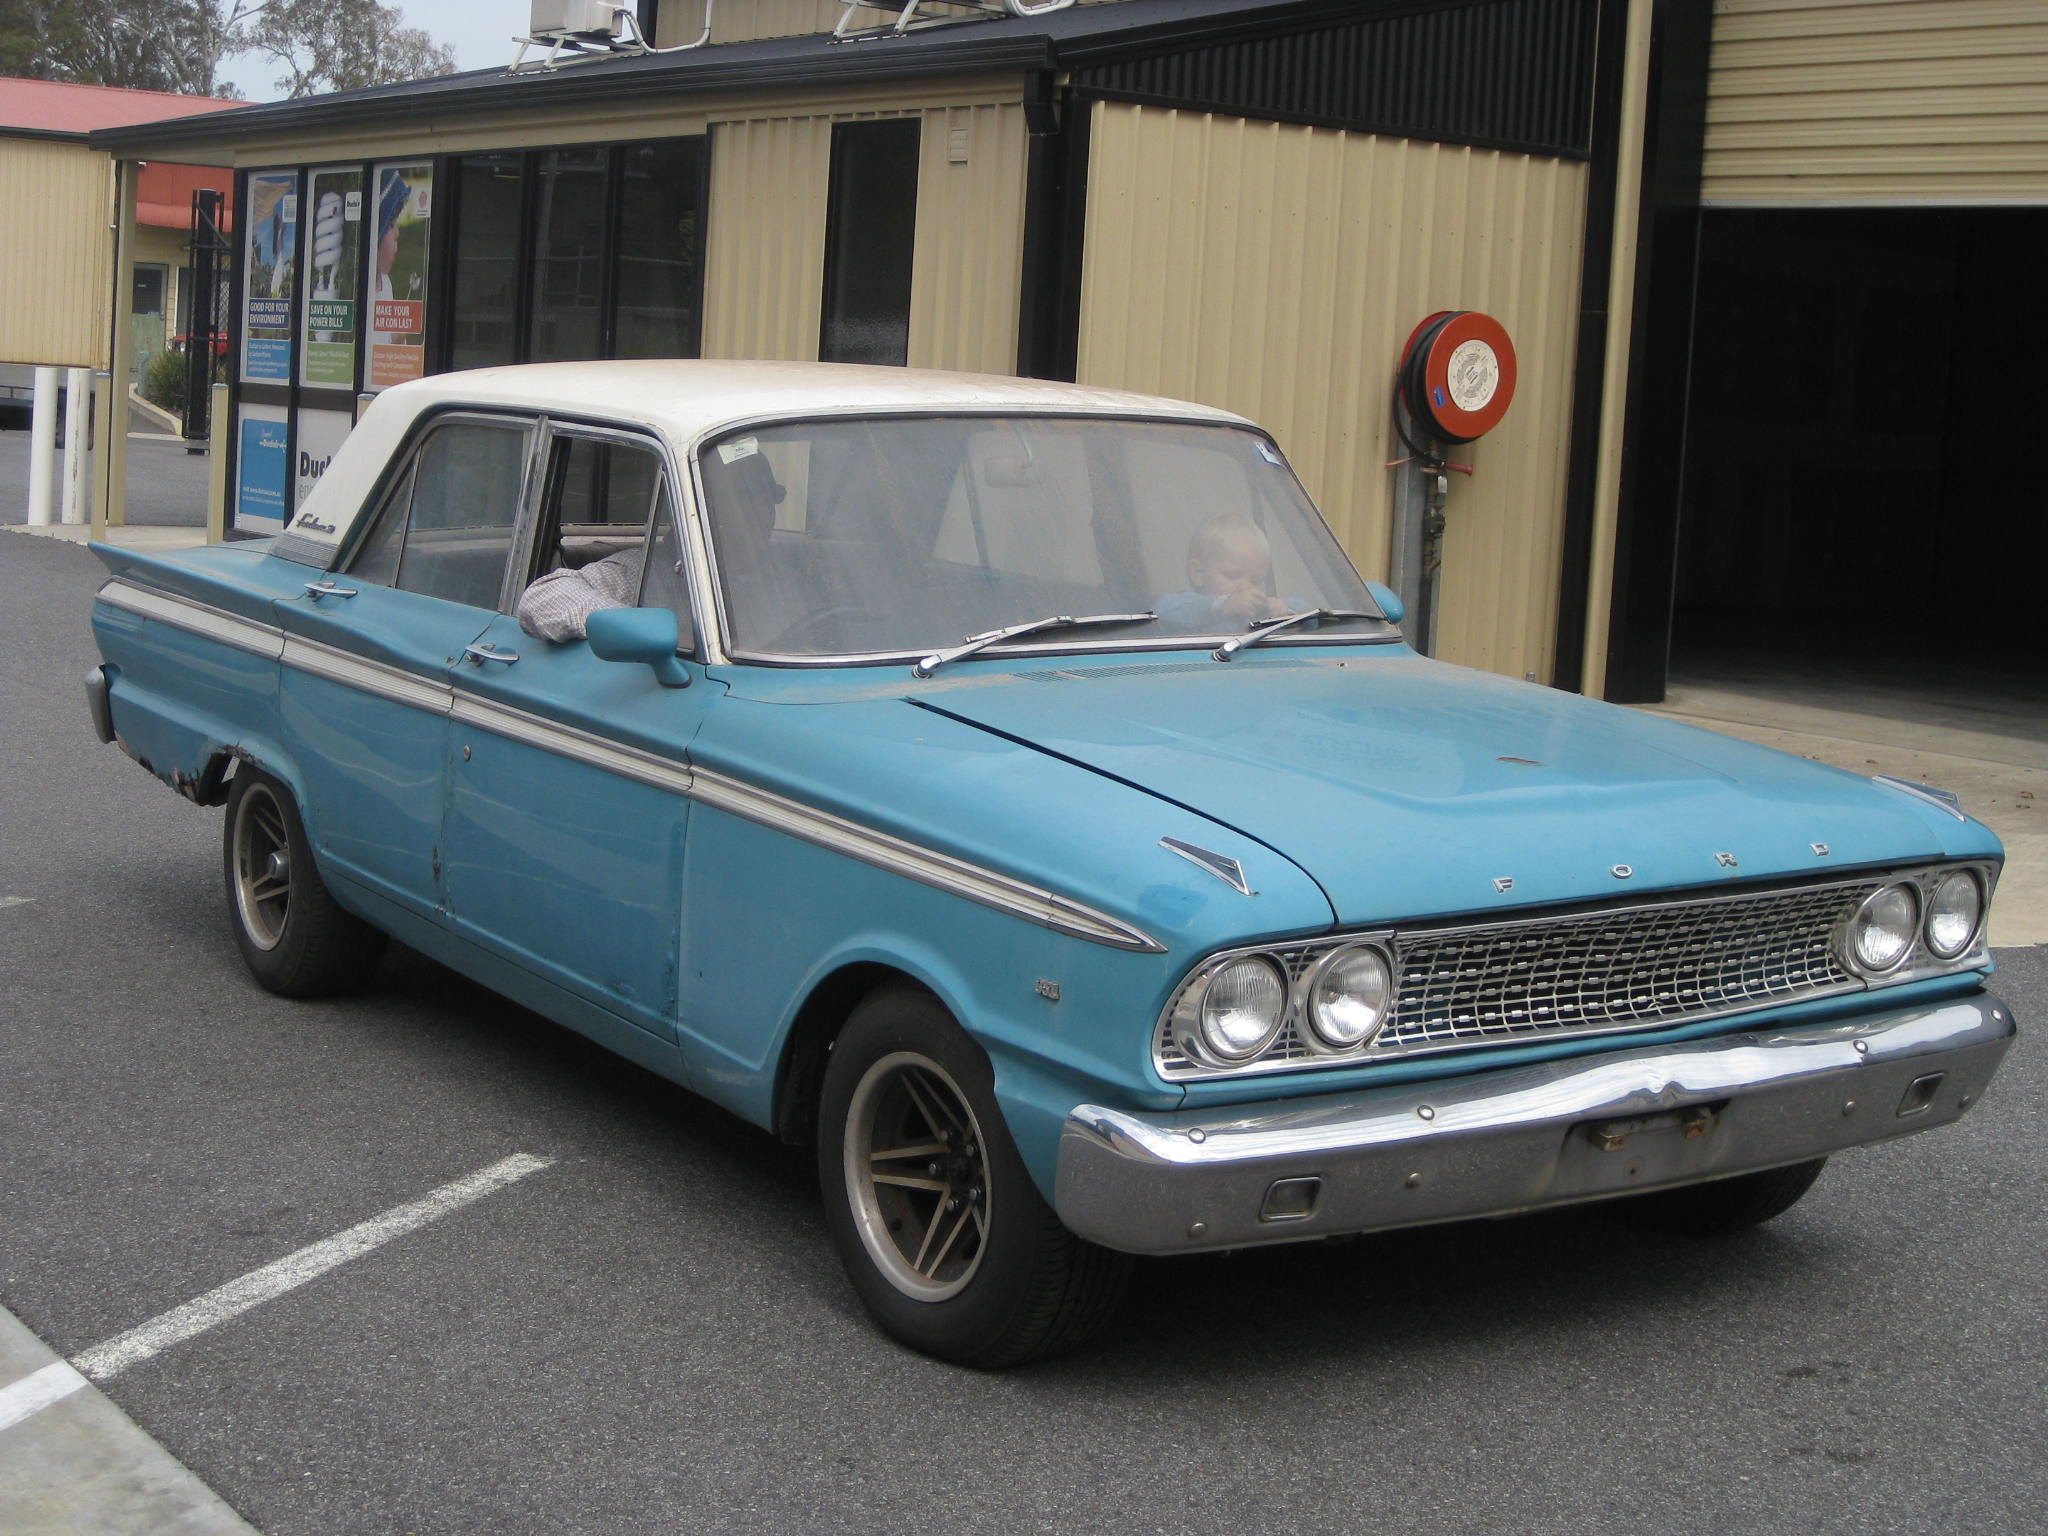 1963 Ford Fairlane 500 Compact – Collectable Classic Cars